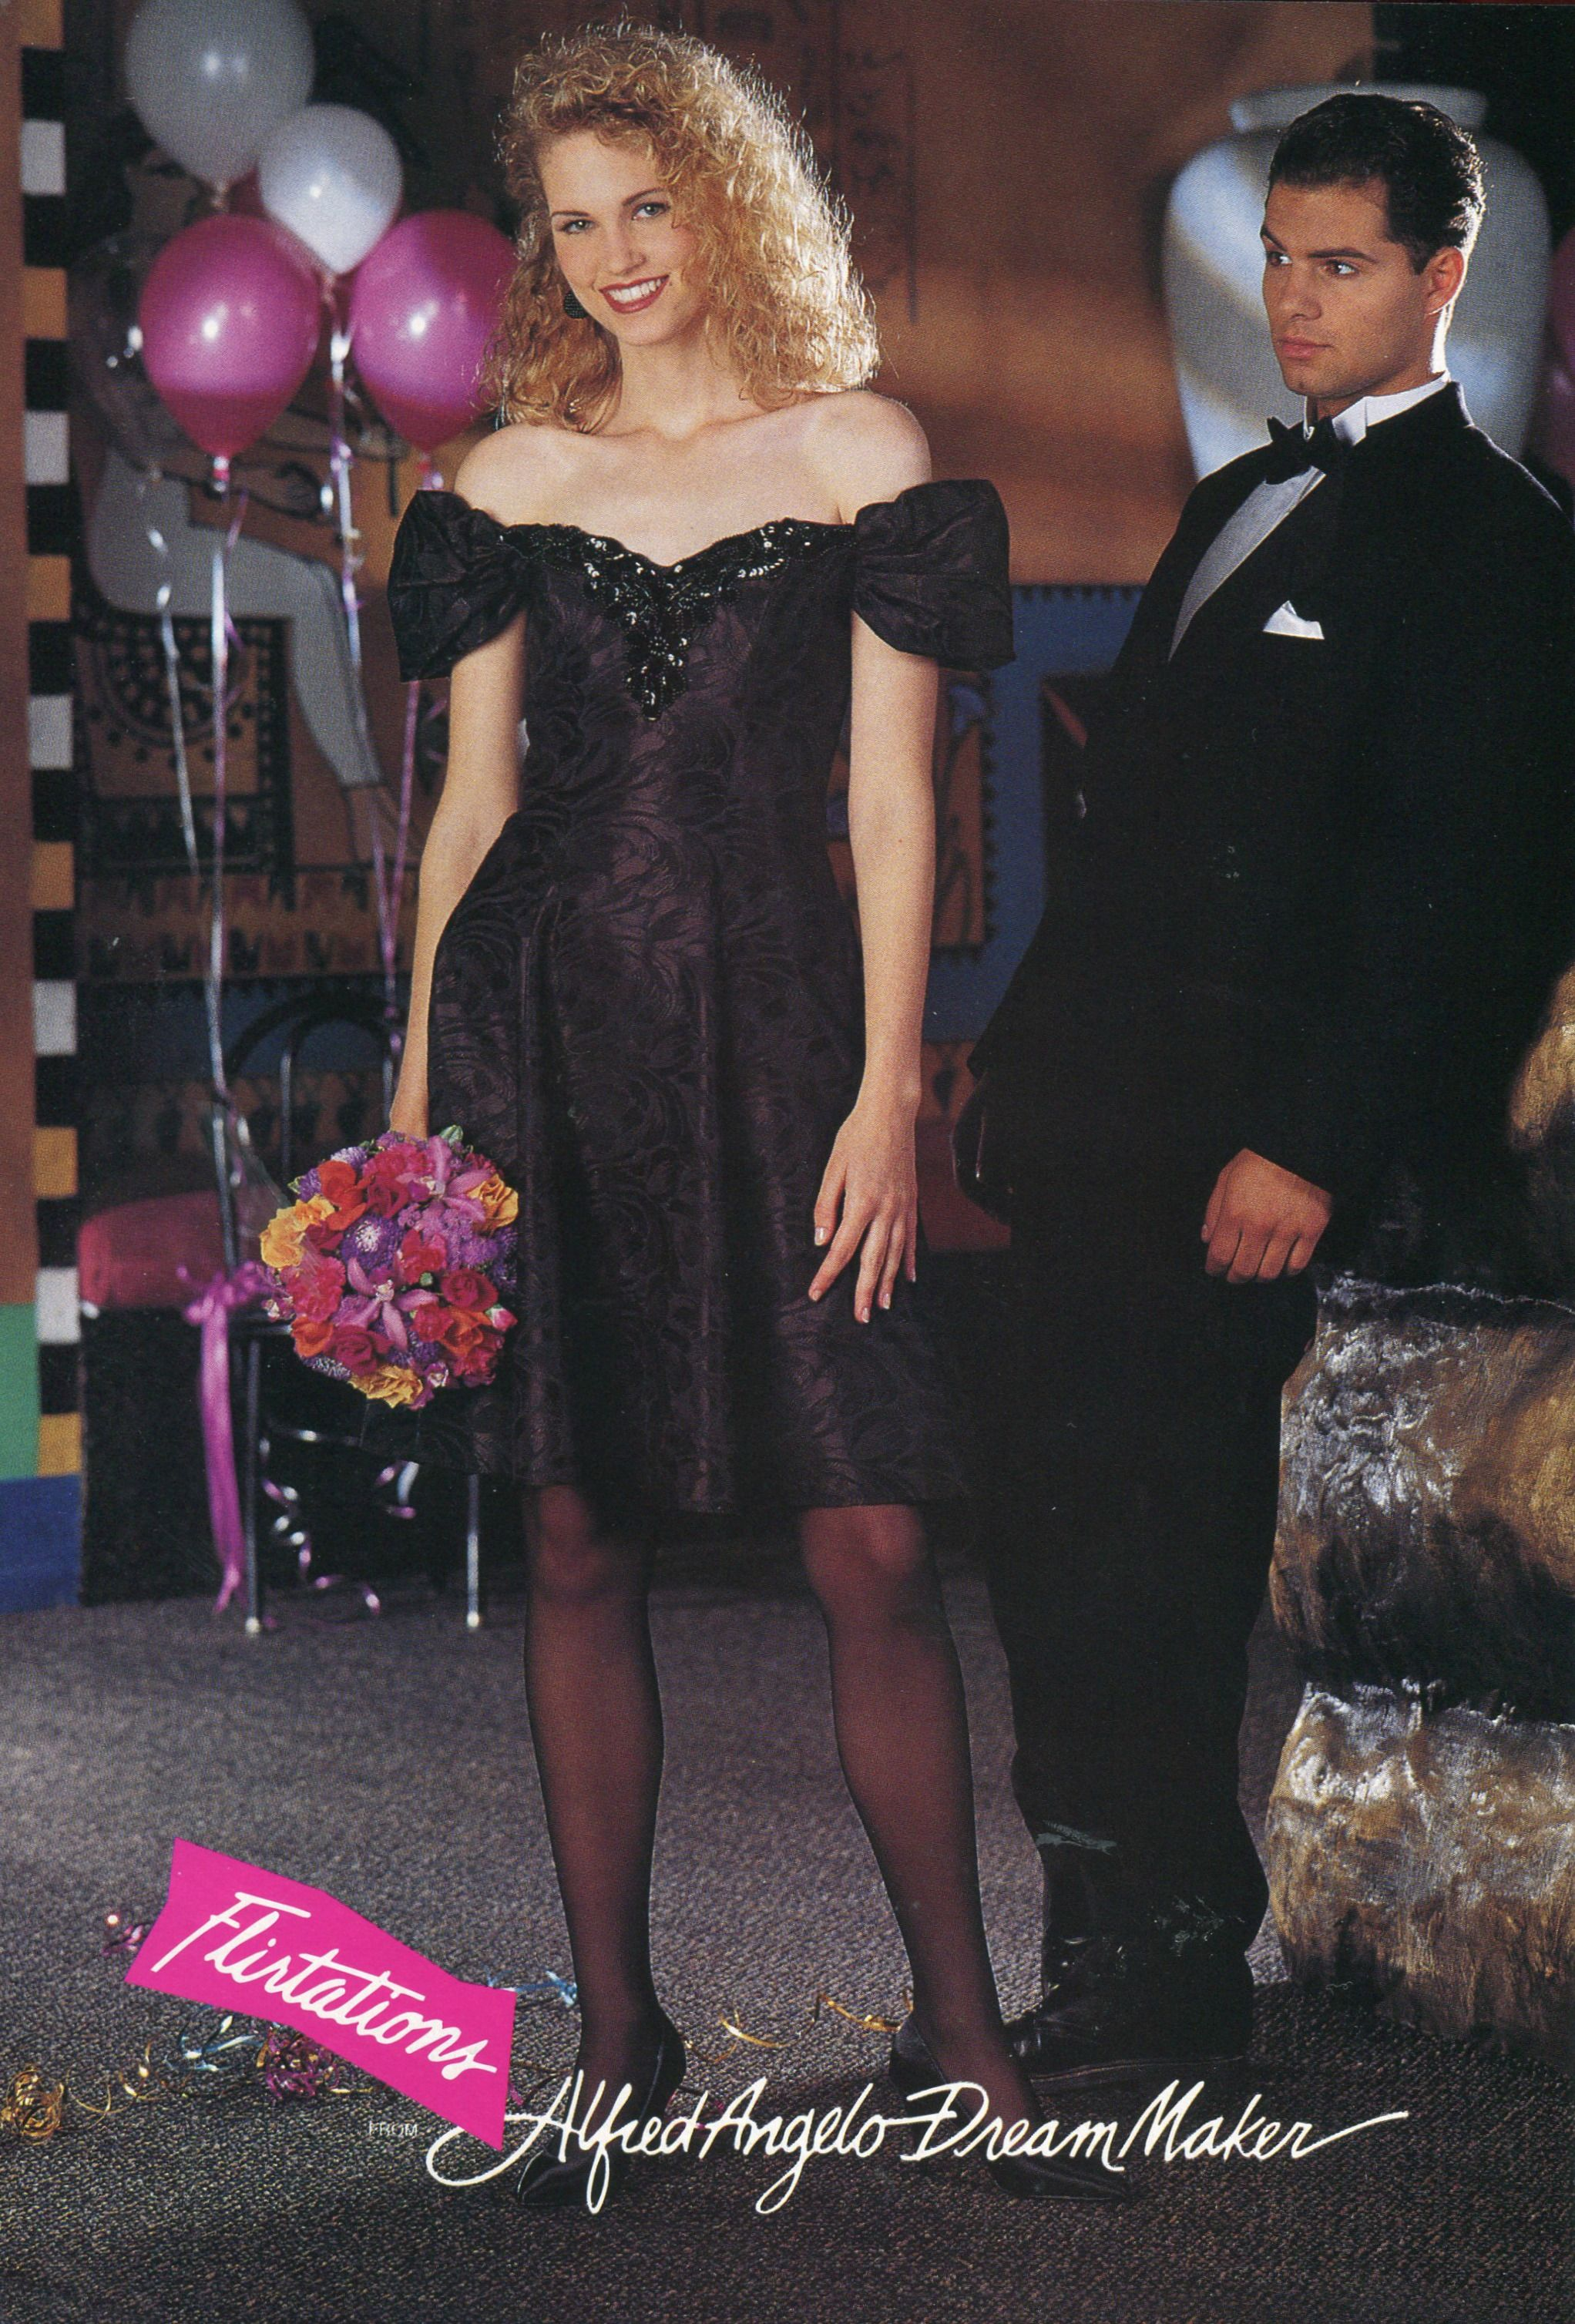 Maxi Prom Dresses From 1994